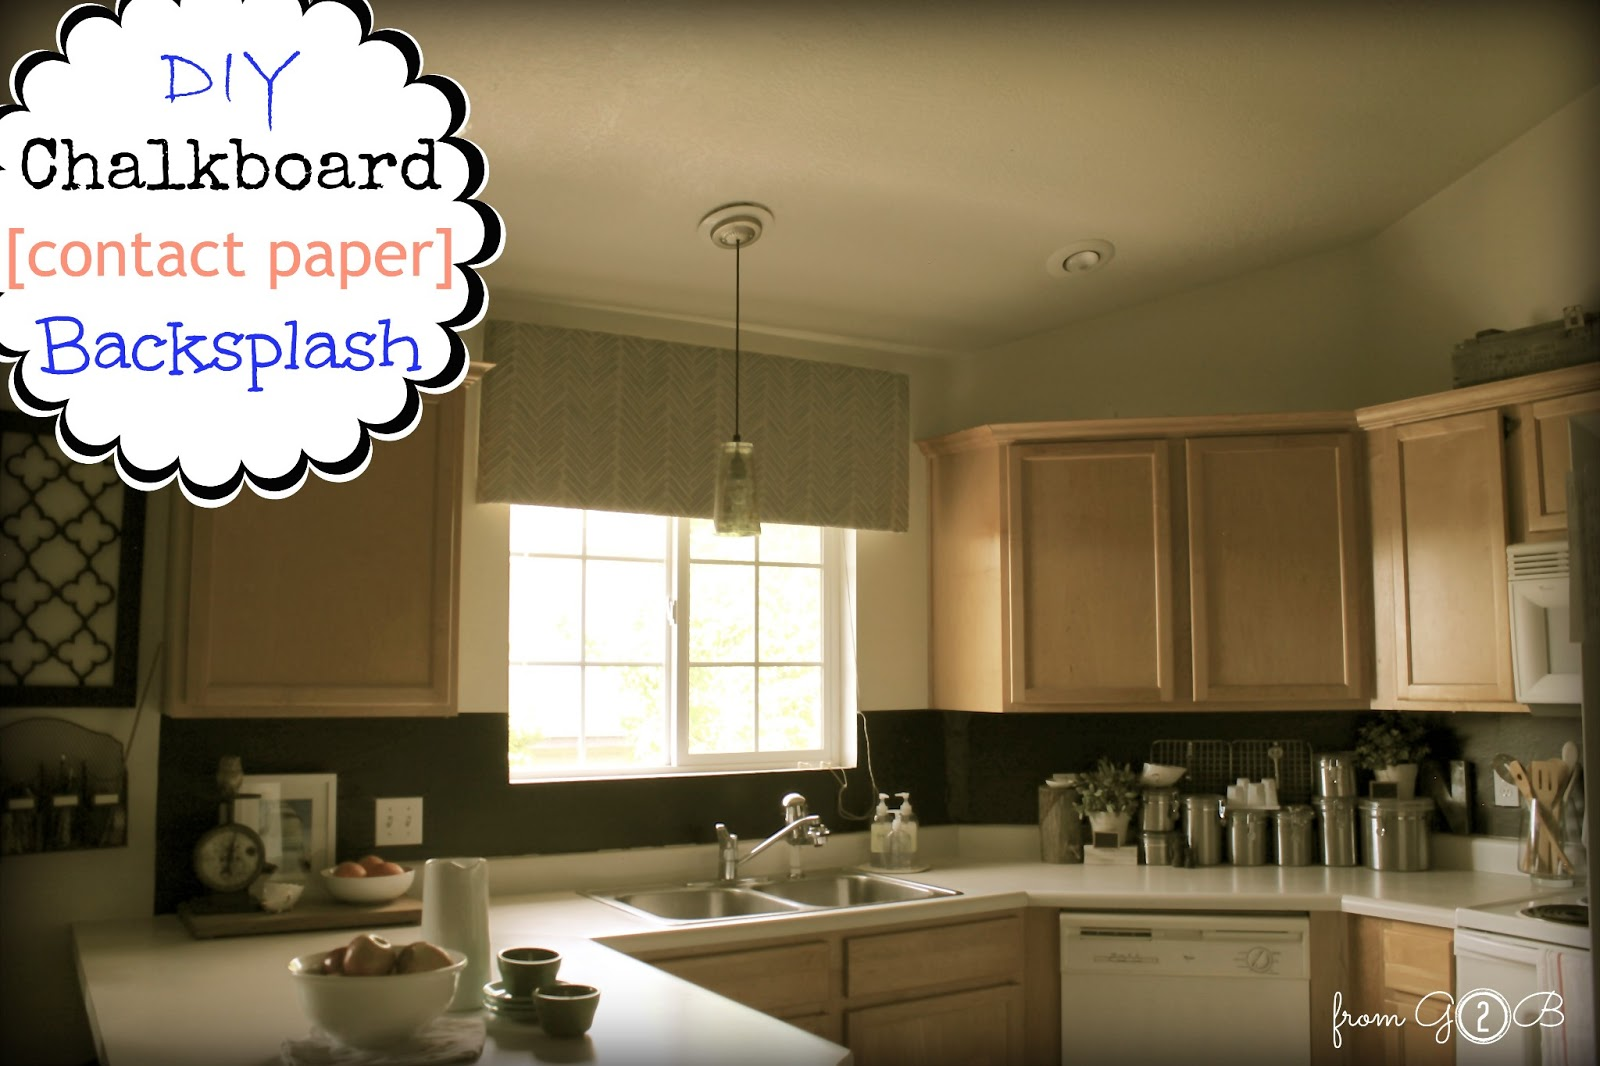 Chalkboard-Contact-Paper-Backsplash-DIY-Removable-Wall-Treatment